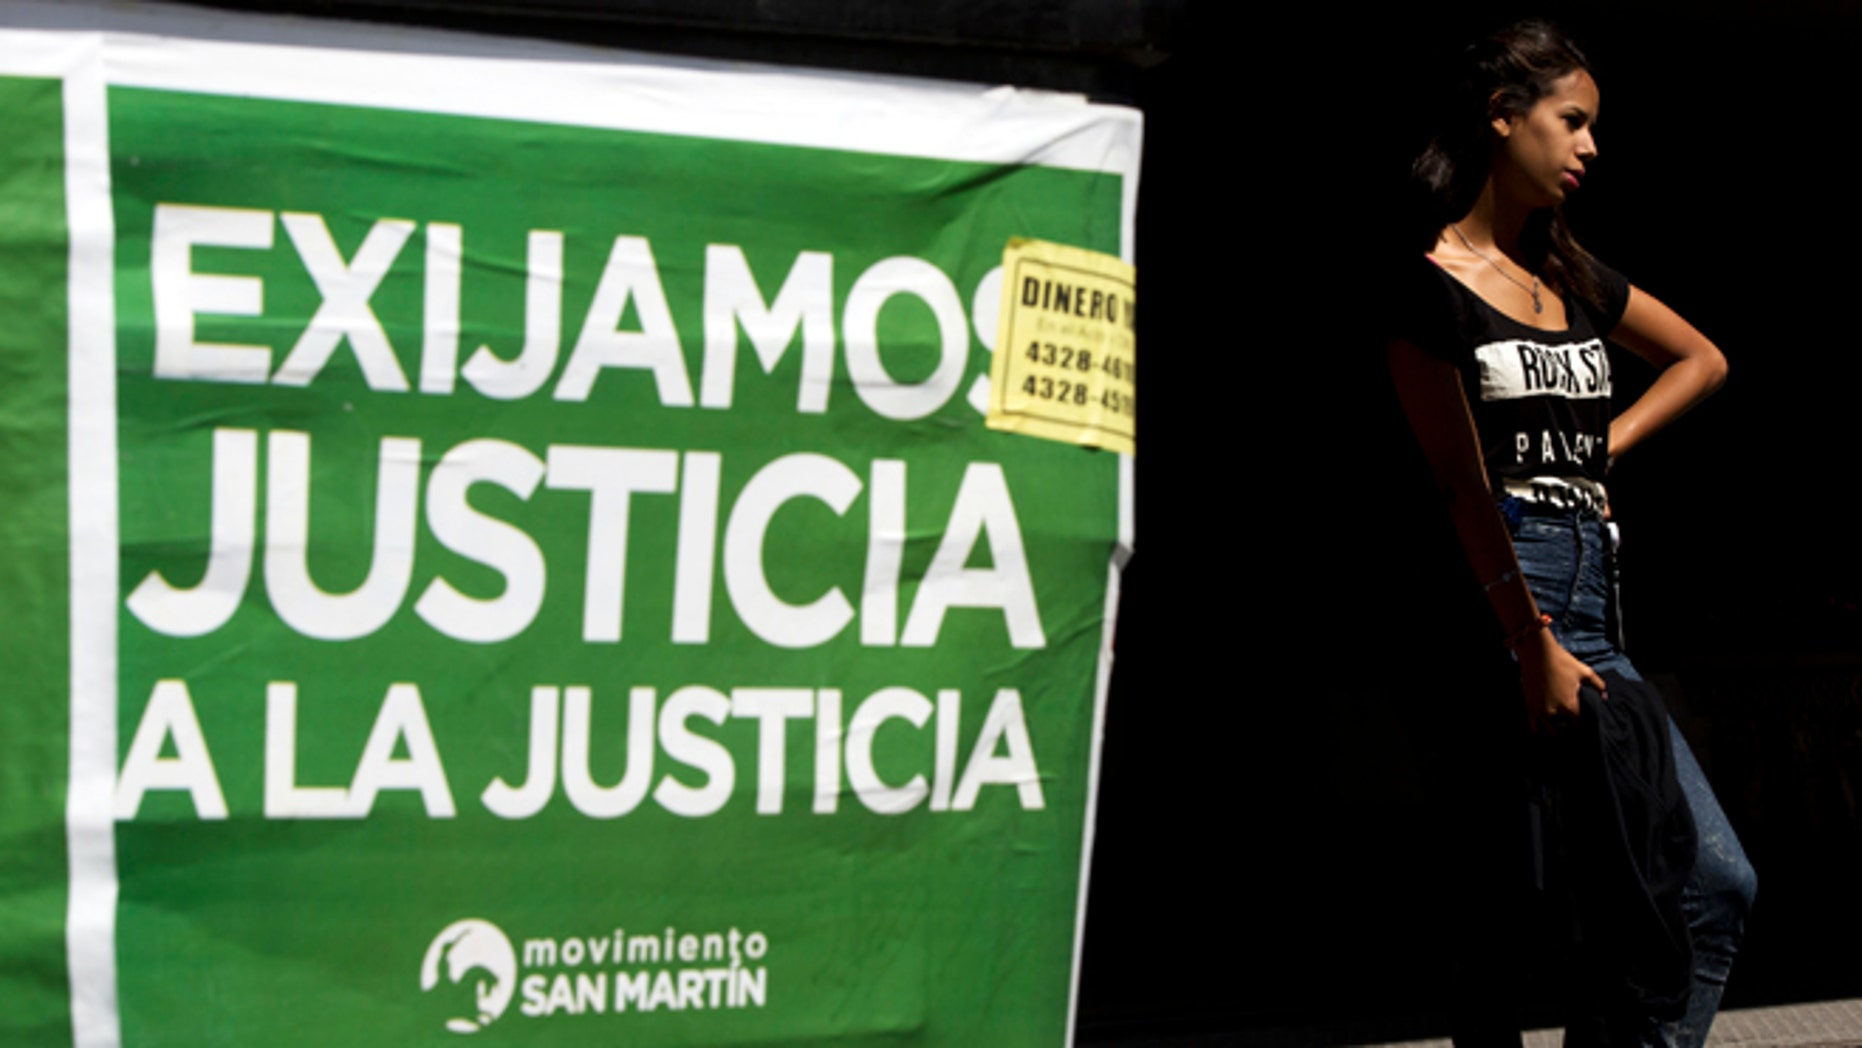 """A woman stands next to a poster that reads in Spanish """"Demand justice to justice"""", in reference to march organized by federal prosecutors demanding justice after the death of special prosecutor Alberto Nisman almost a month ago, in Buenos Aires, Argentina, Friday, Feb. 13, 2015. Nisman accused President Cristina Fernandez, Foreign Minister Hector Timerman and others in her administration of brokering the cover-up in the bombing of a Jewish community center in exchange for favorable deals on oil and other goods from Iran. Fernandez and Timerman have strongly denied the accusations, and Iran has repeatedly denied involvement in the bombing, which killed 85 people. (AP Photo/Rodrigo Abd)"""